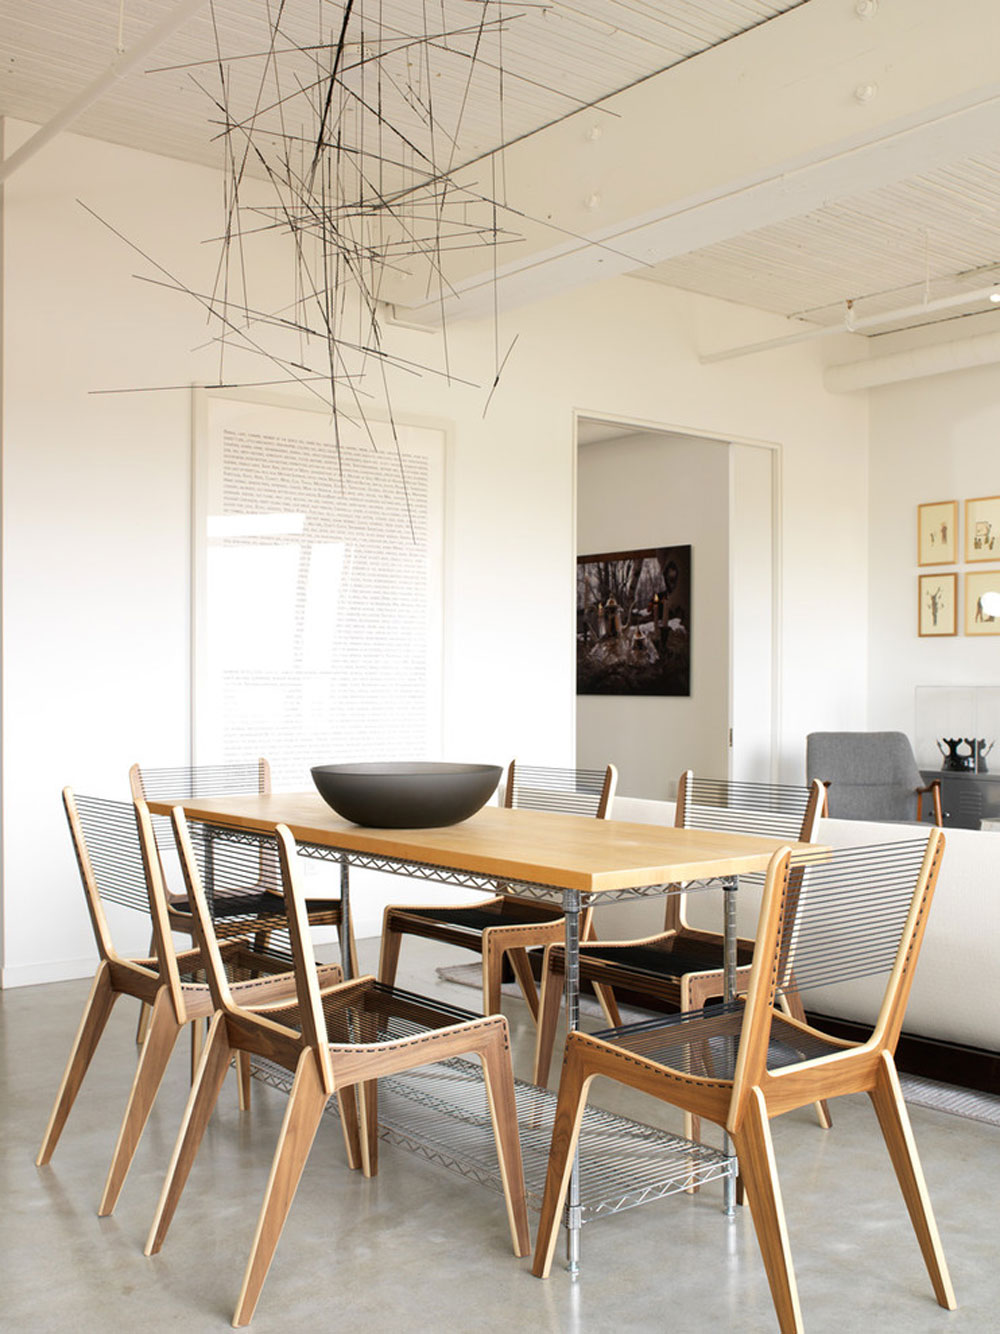 Modern-Dining-Room-by-Croma-Design-Inc Futuristic house designs: furniture and home decor